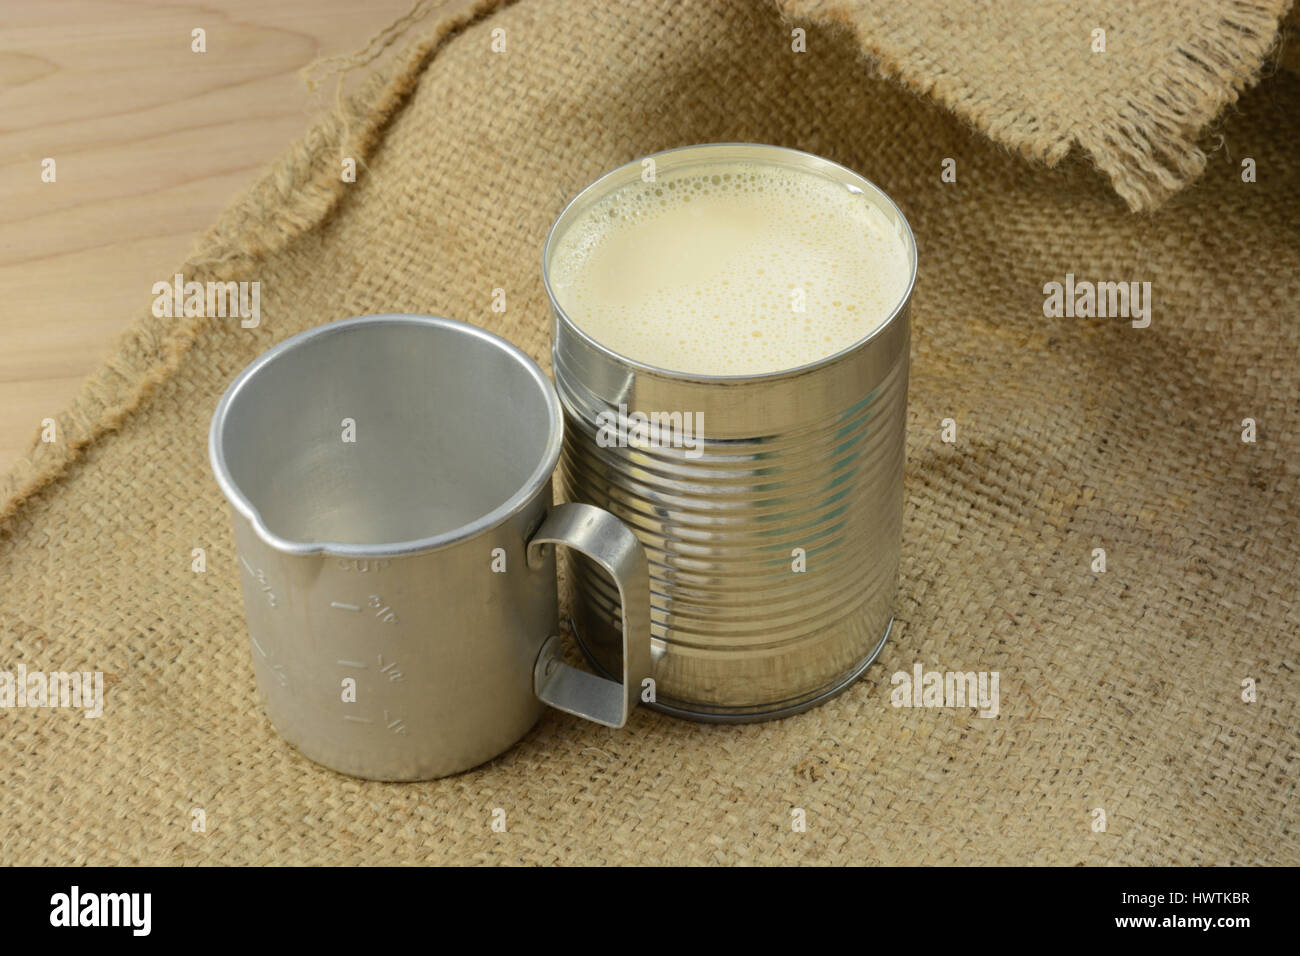 Canned evaporated milk and vintage retro measuring cup on burlap - Stock Image